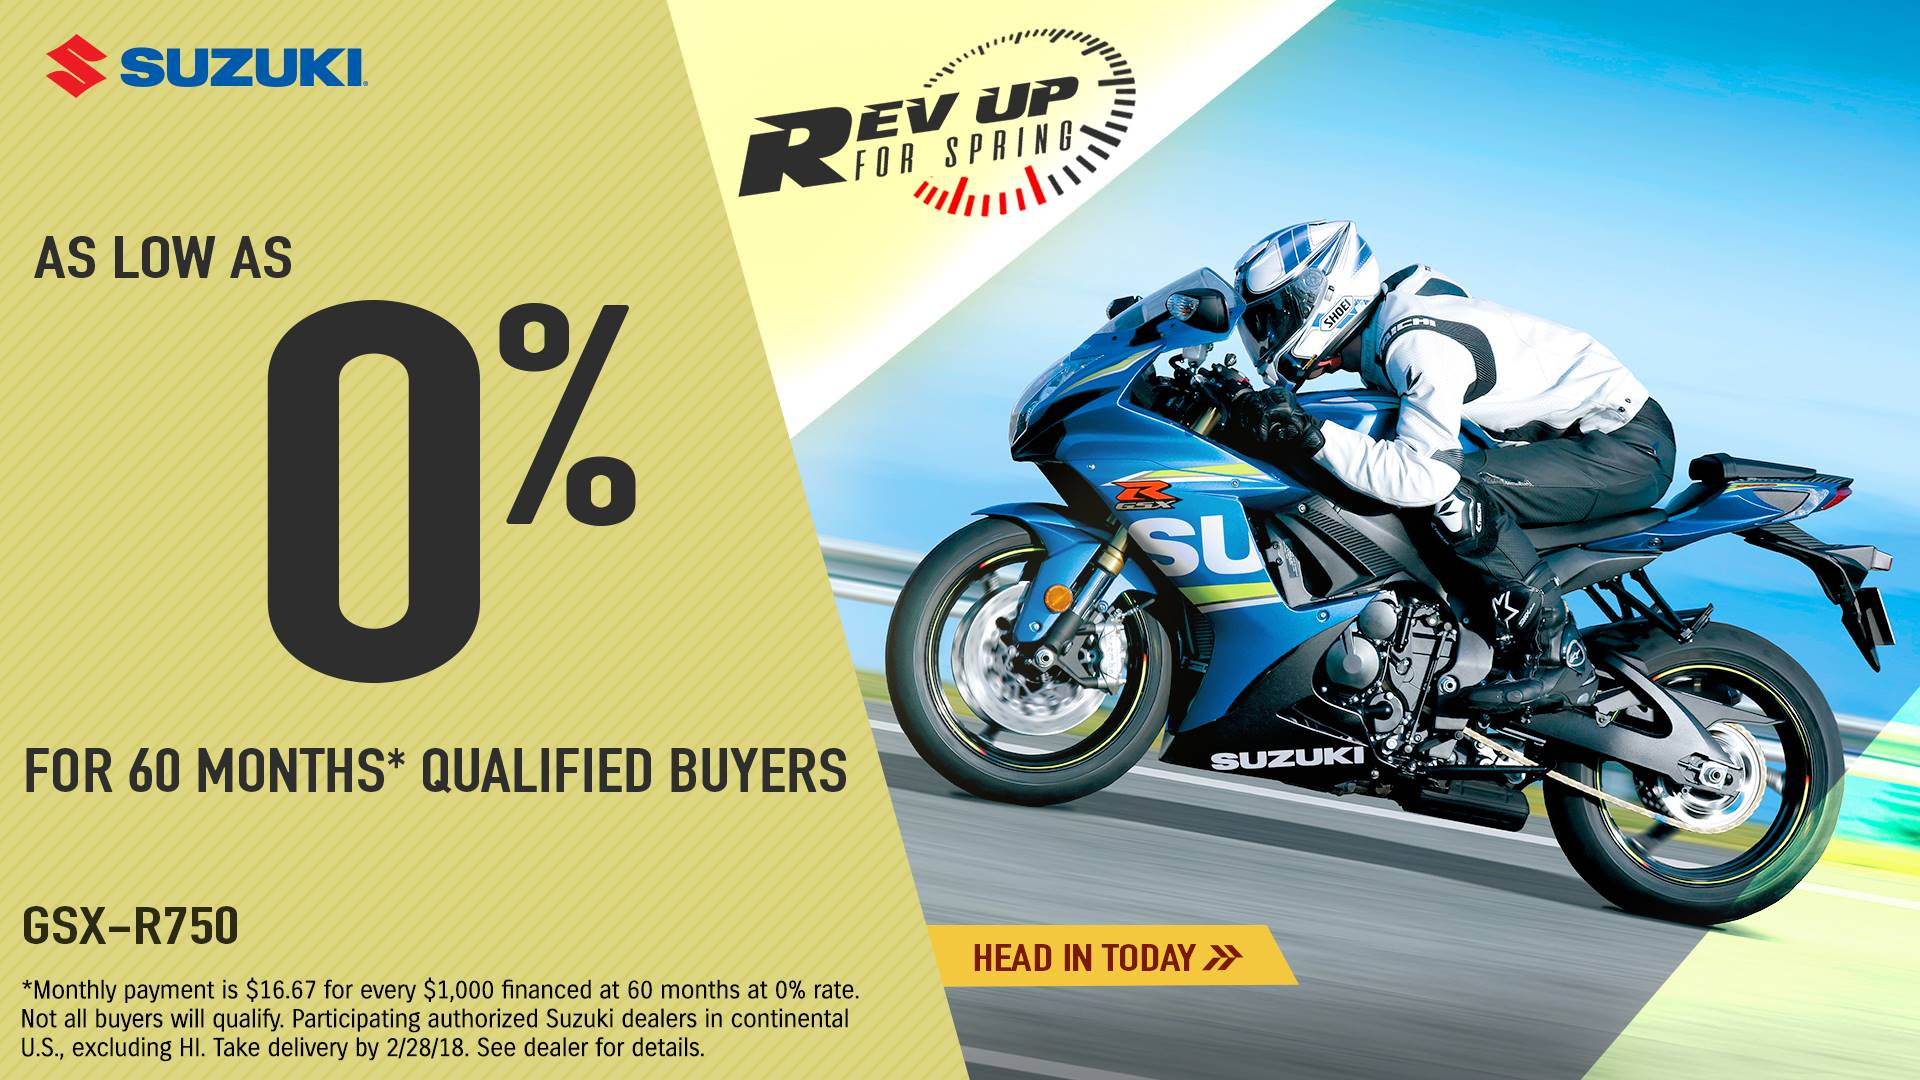 Suzuki Motor of America Inc. Suzuki - Rev Up for Spring for Sportbike and Standard